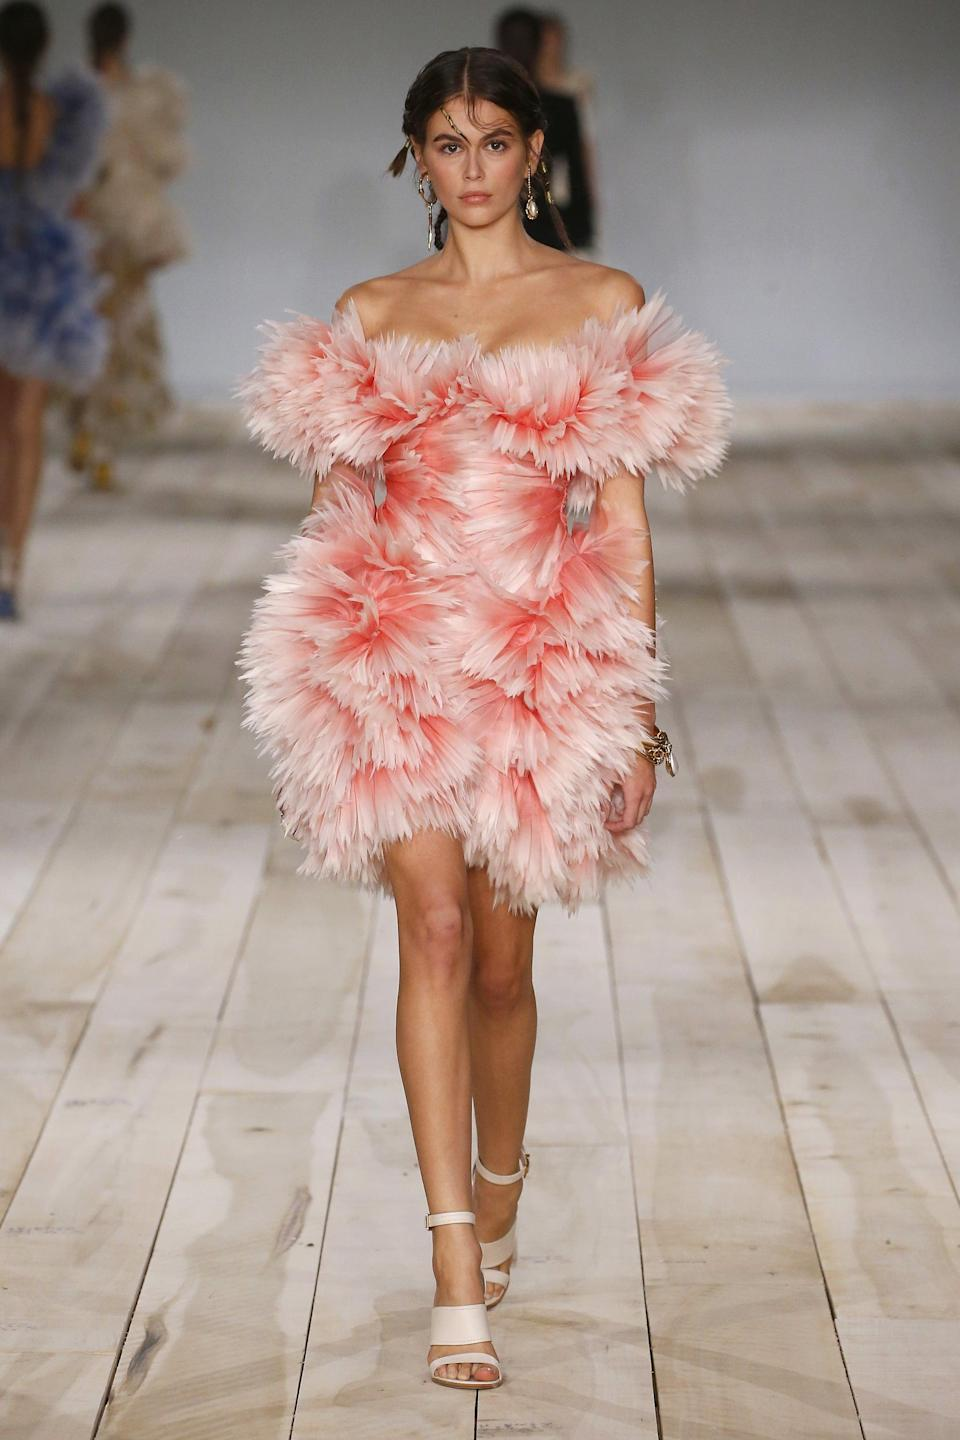 PARIS, FRANCE – SEPTEMBER 30: Model Kaia Gerber walks the runway during the Alexander McQueen Womenswear Spring/Summer 2020 show as part of Paris Fashion Week on September 30, 2019 in Paris, France. (Photo by Estrop/Getty Images)